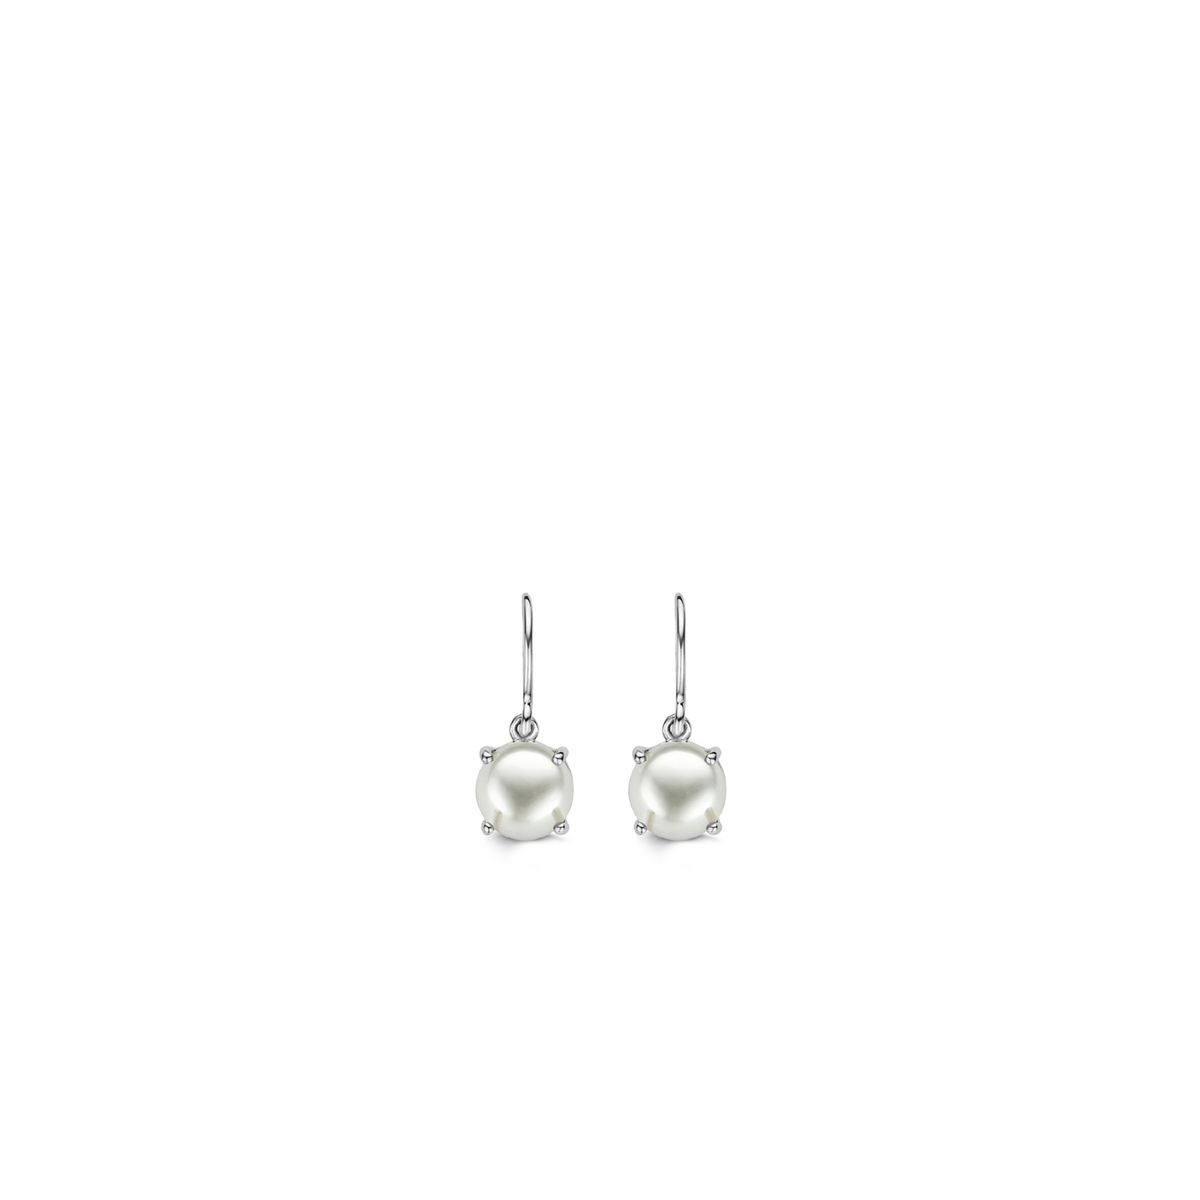 TI SENTO - Milano Earrings 7608PW